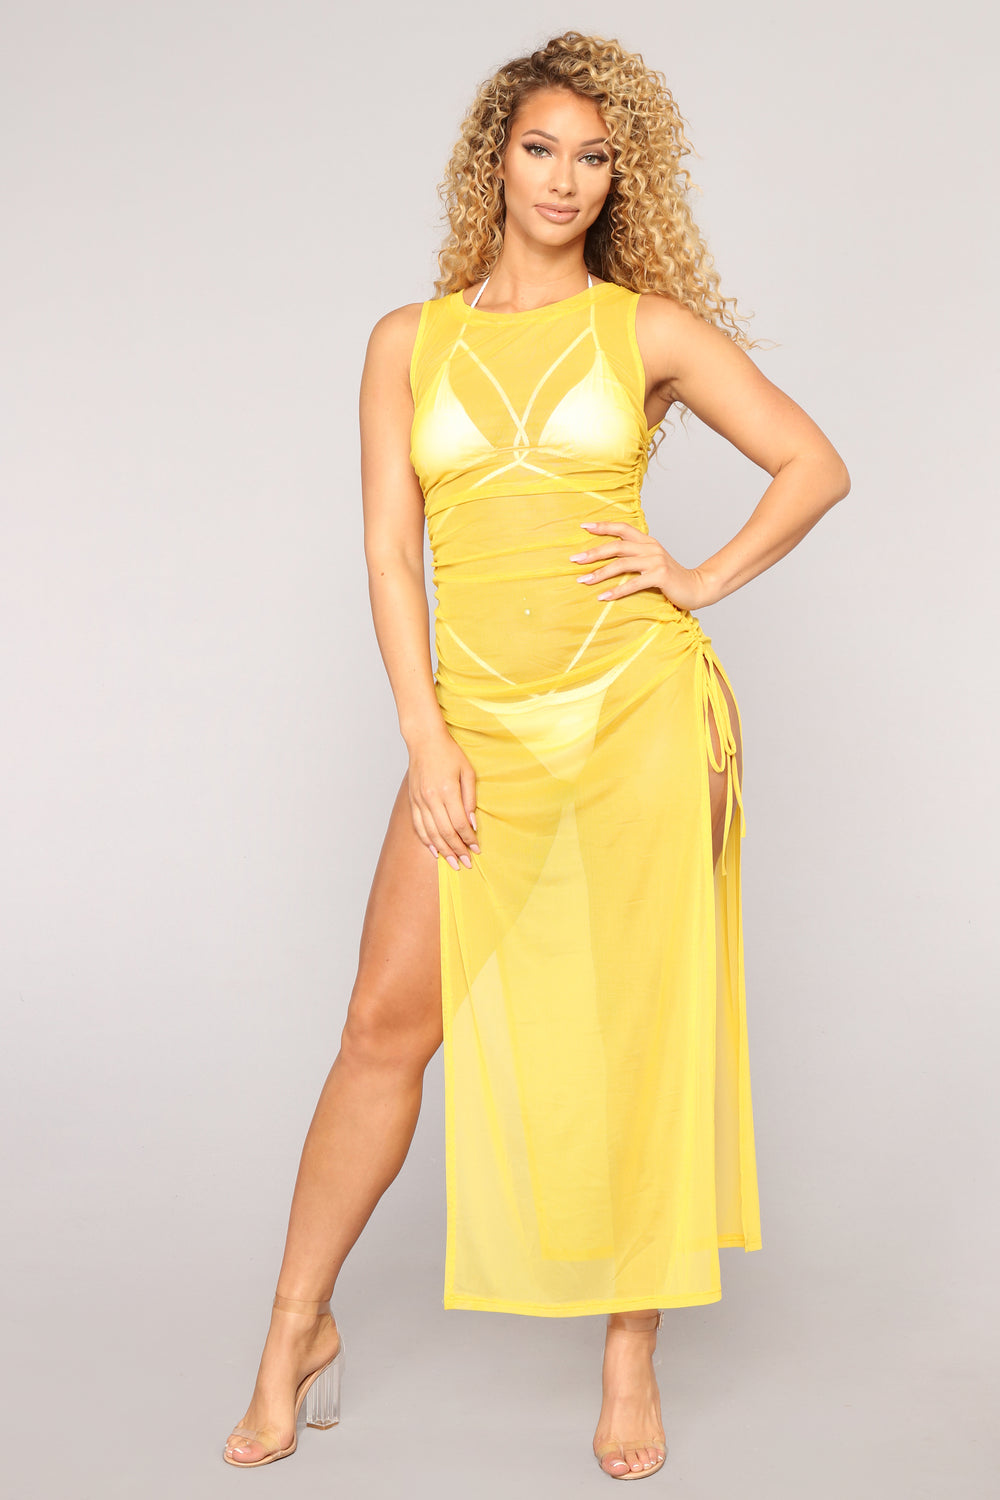 Away From Reality Coverup Dress - Yellow